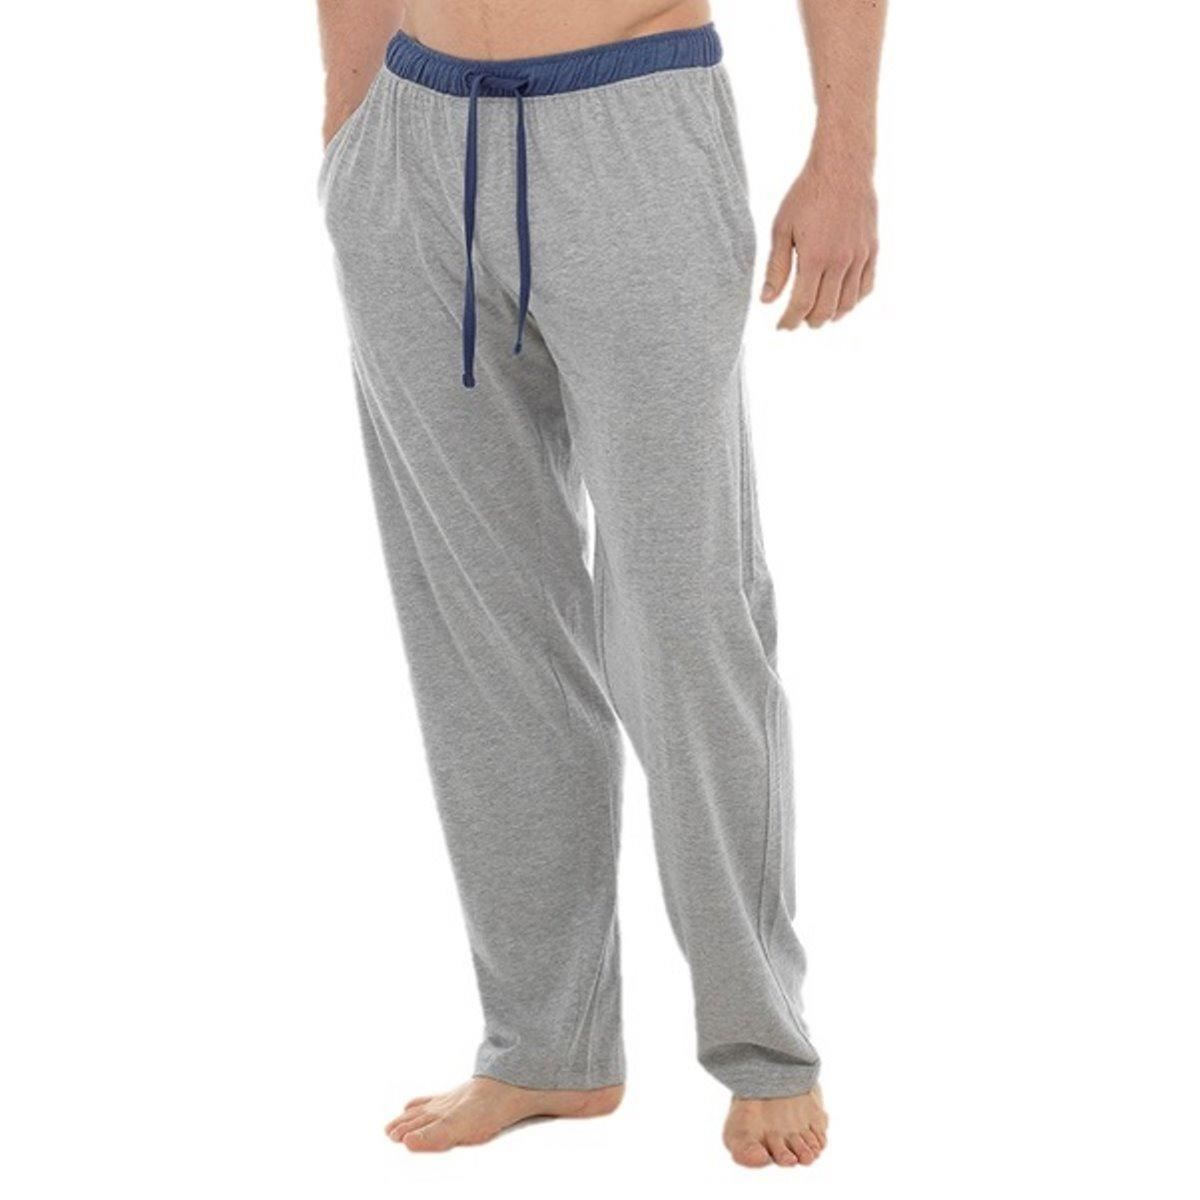 Shop the new look of Old Navy sleep pants that offer style and comfort for the entire family. Sleep pants come in many styles, prints and colors including shorts, capris and long pants. Find the cool sleep pants that you have been looking for at Old Navy.